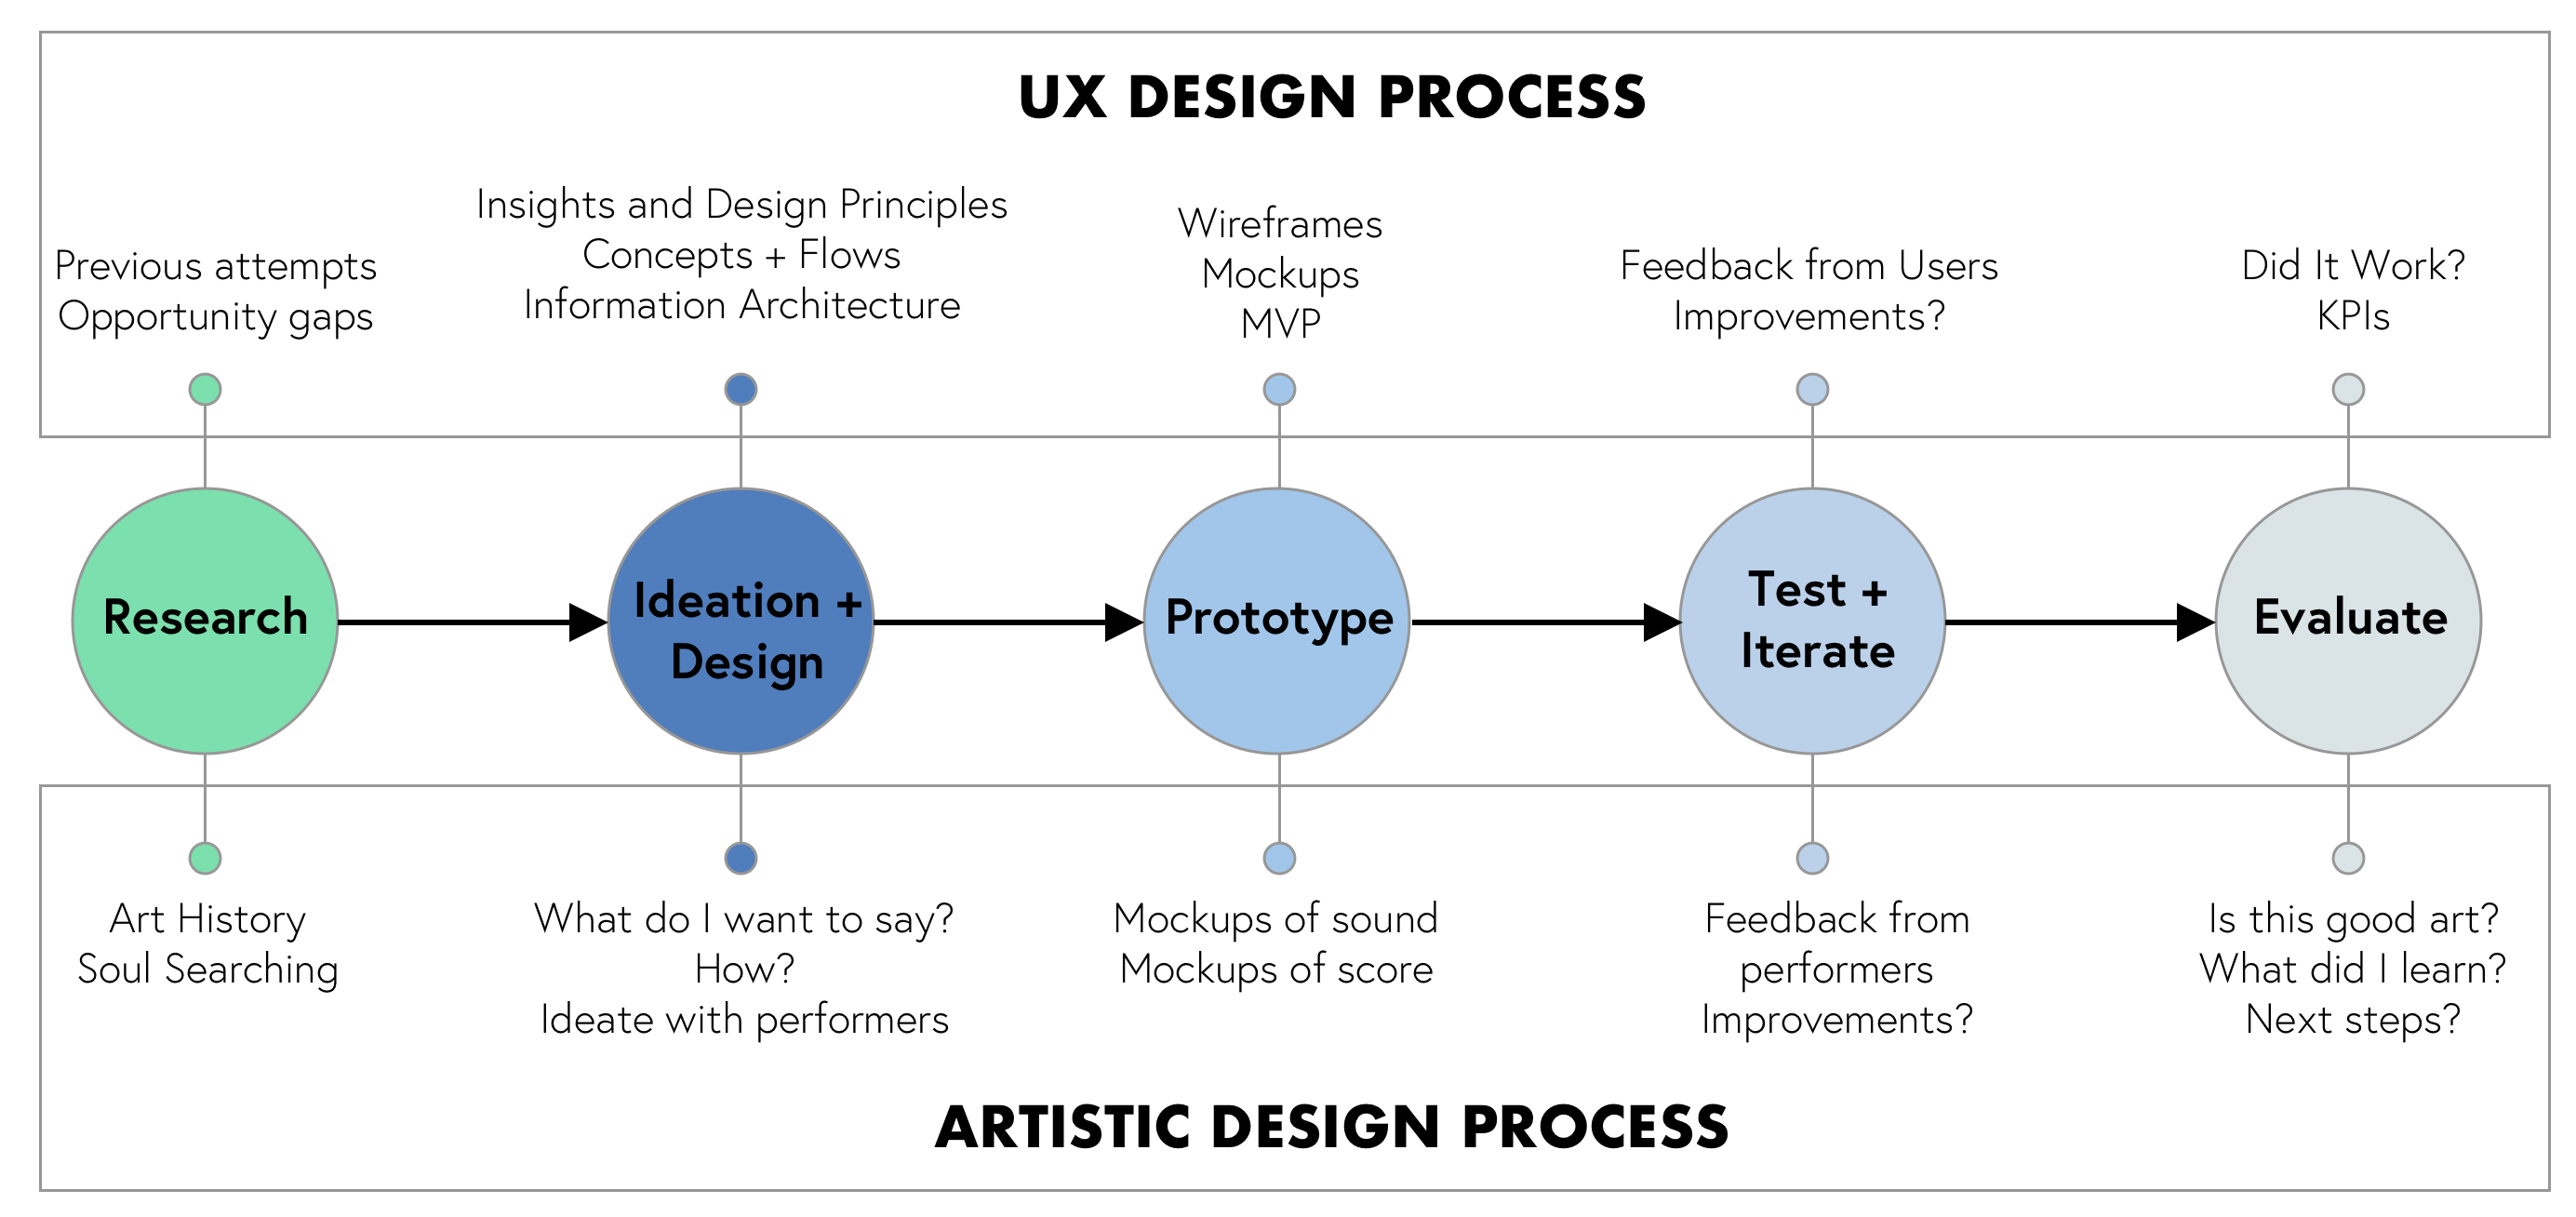 The Hidden Links Between Ux Design And Music Dance Performance By Scott Rubin Ux Collective